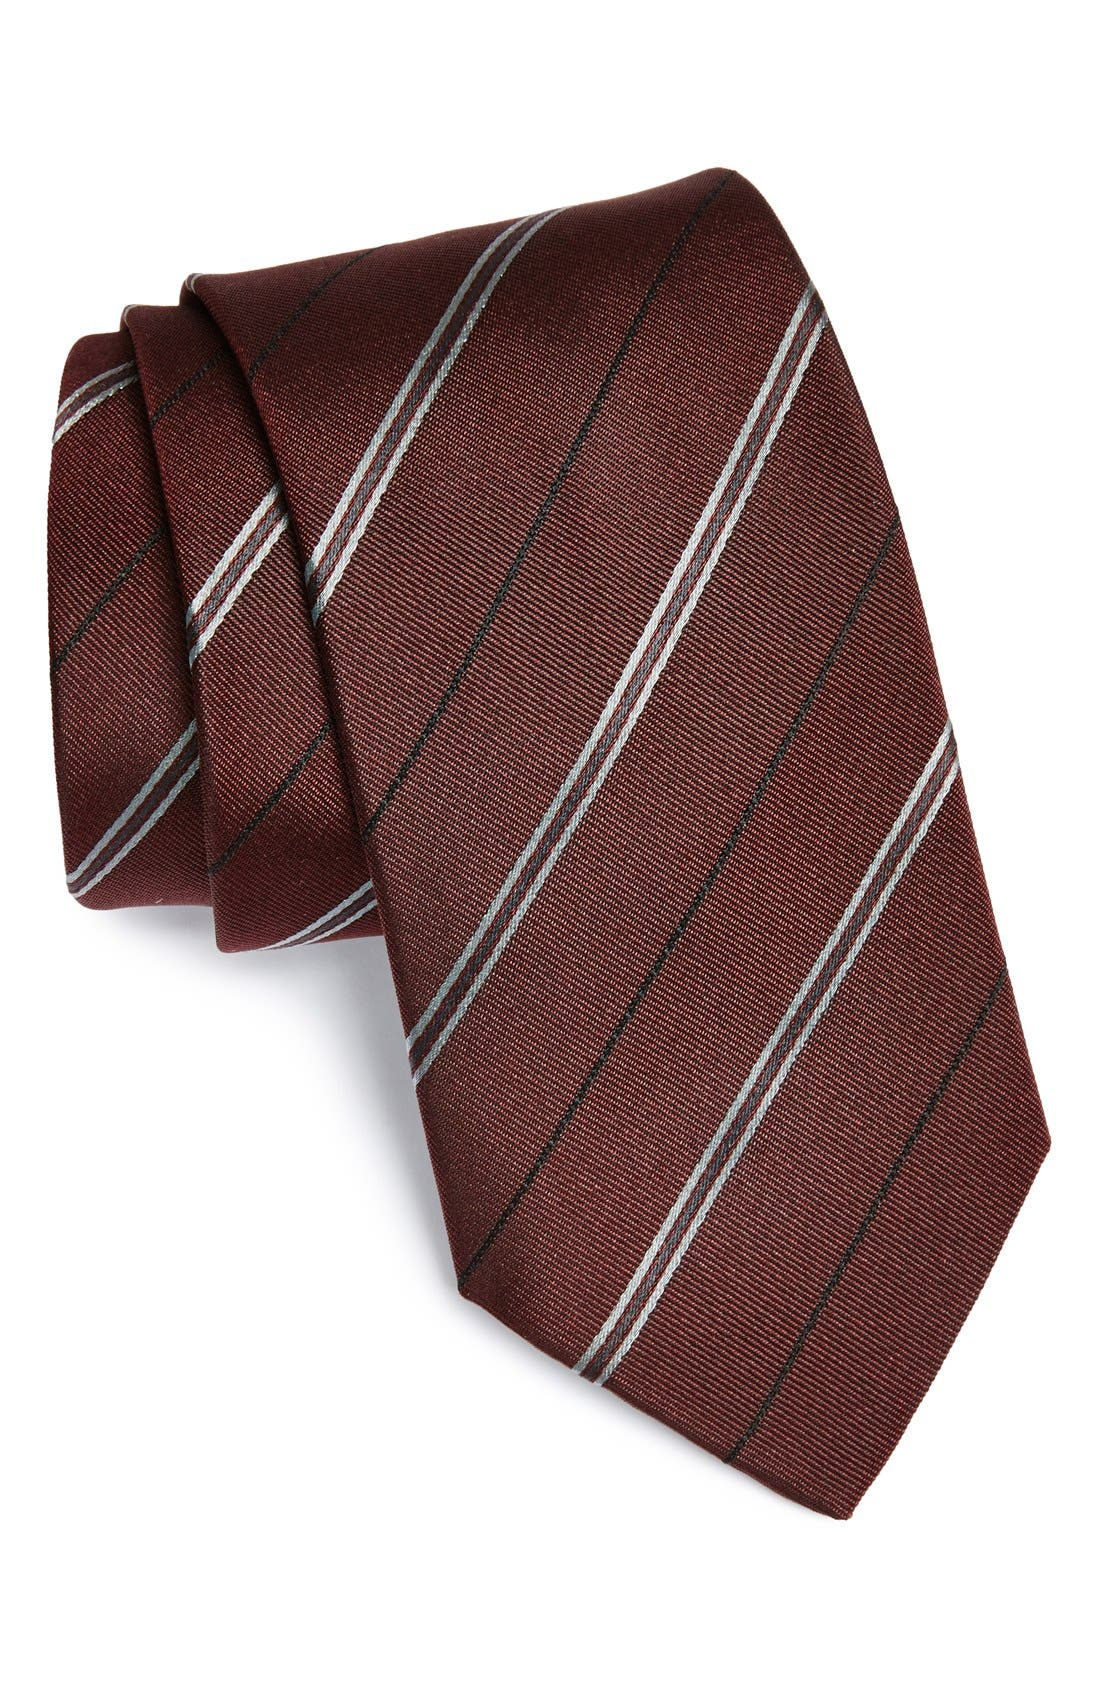 Alternate Image 1 Selected - Dolce&Gabbana Woven Silk Tie